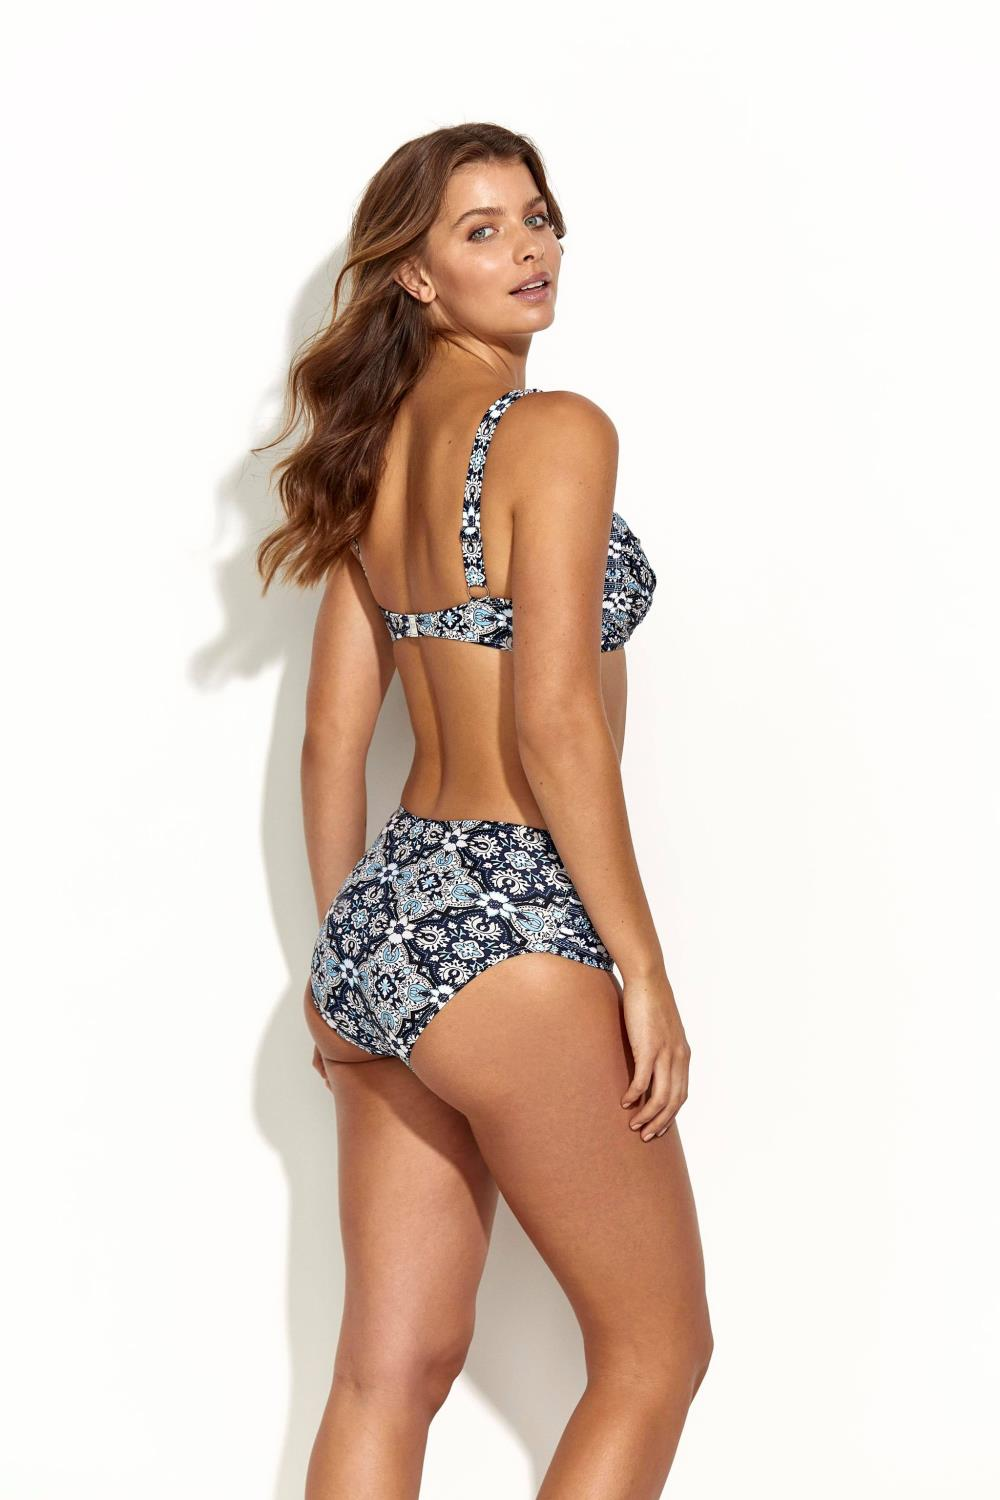 gallery-7226-for-602AA9231